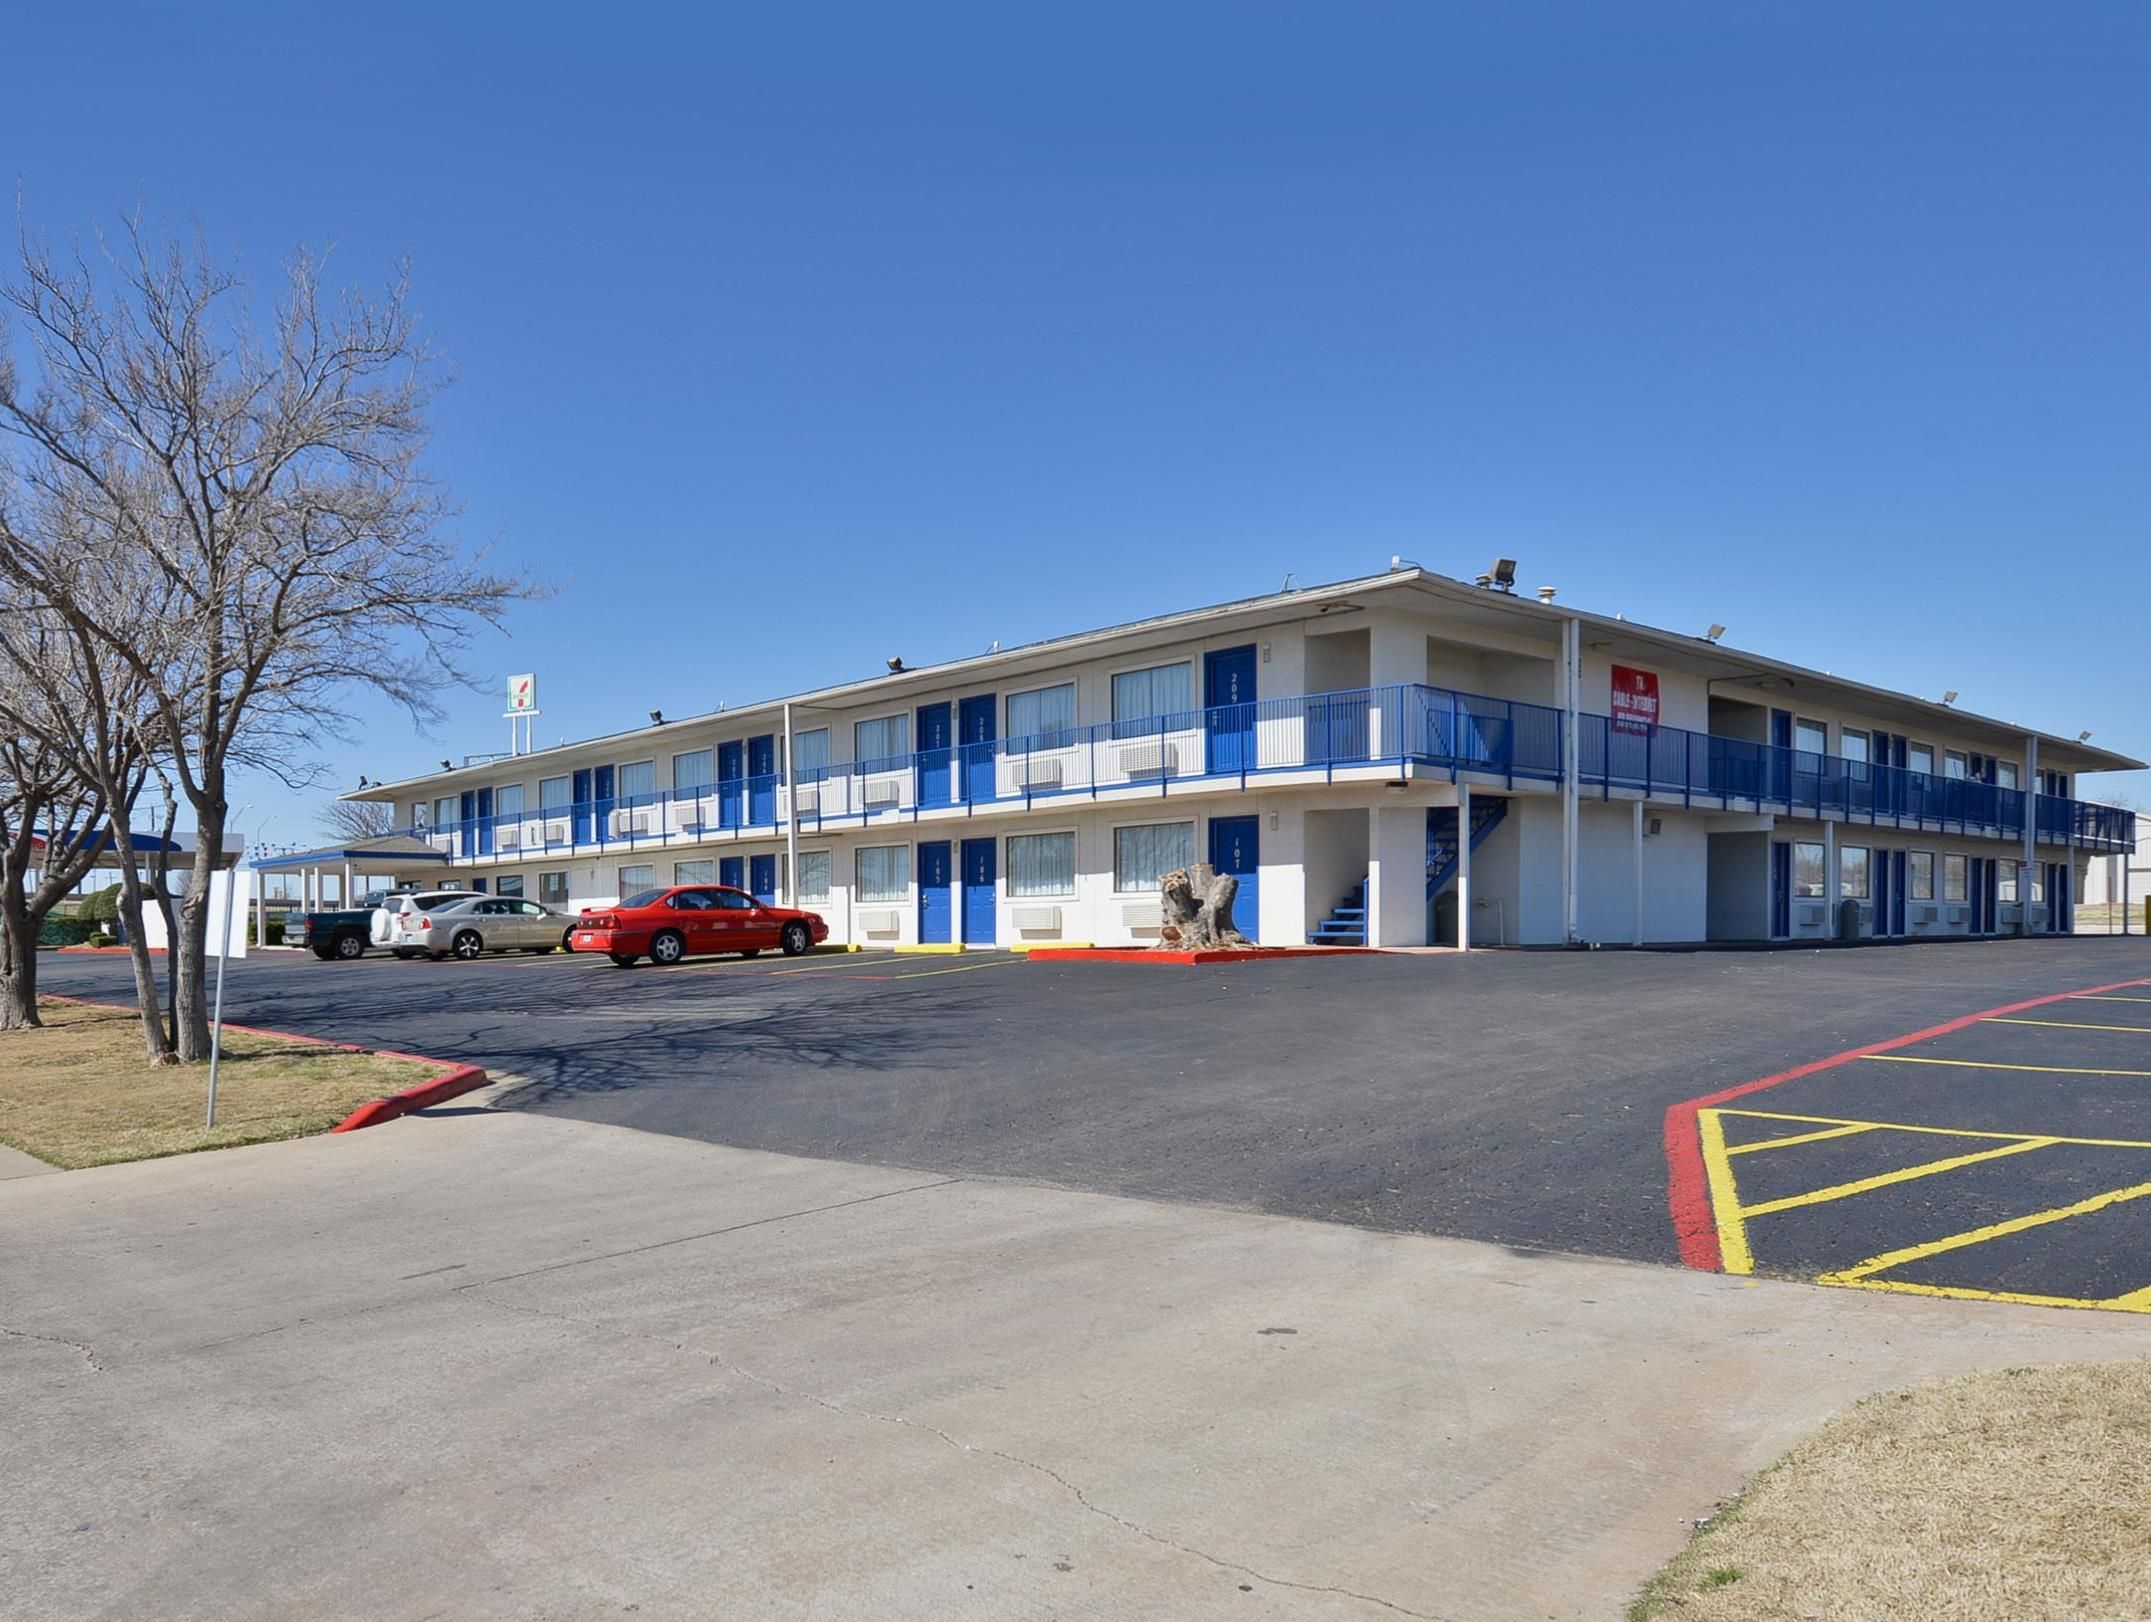 Americas Best Value Inn Park Falls Wichita Falls Tx Americas Best Value Inn Wichita Falls United